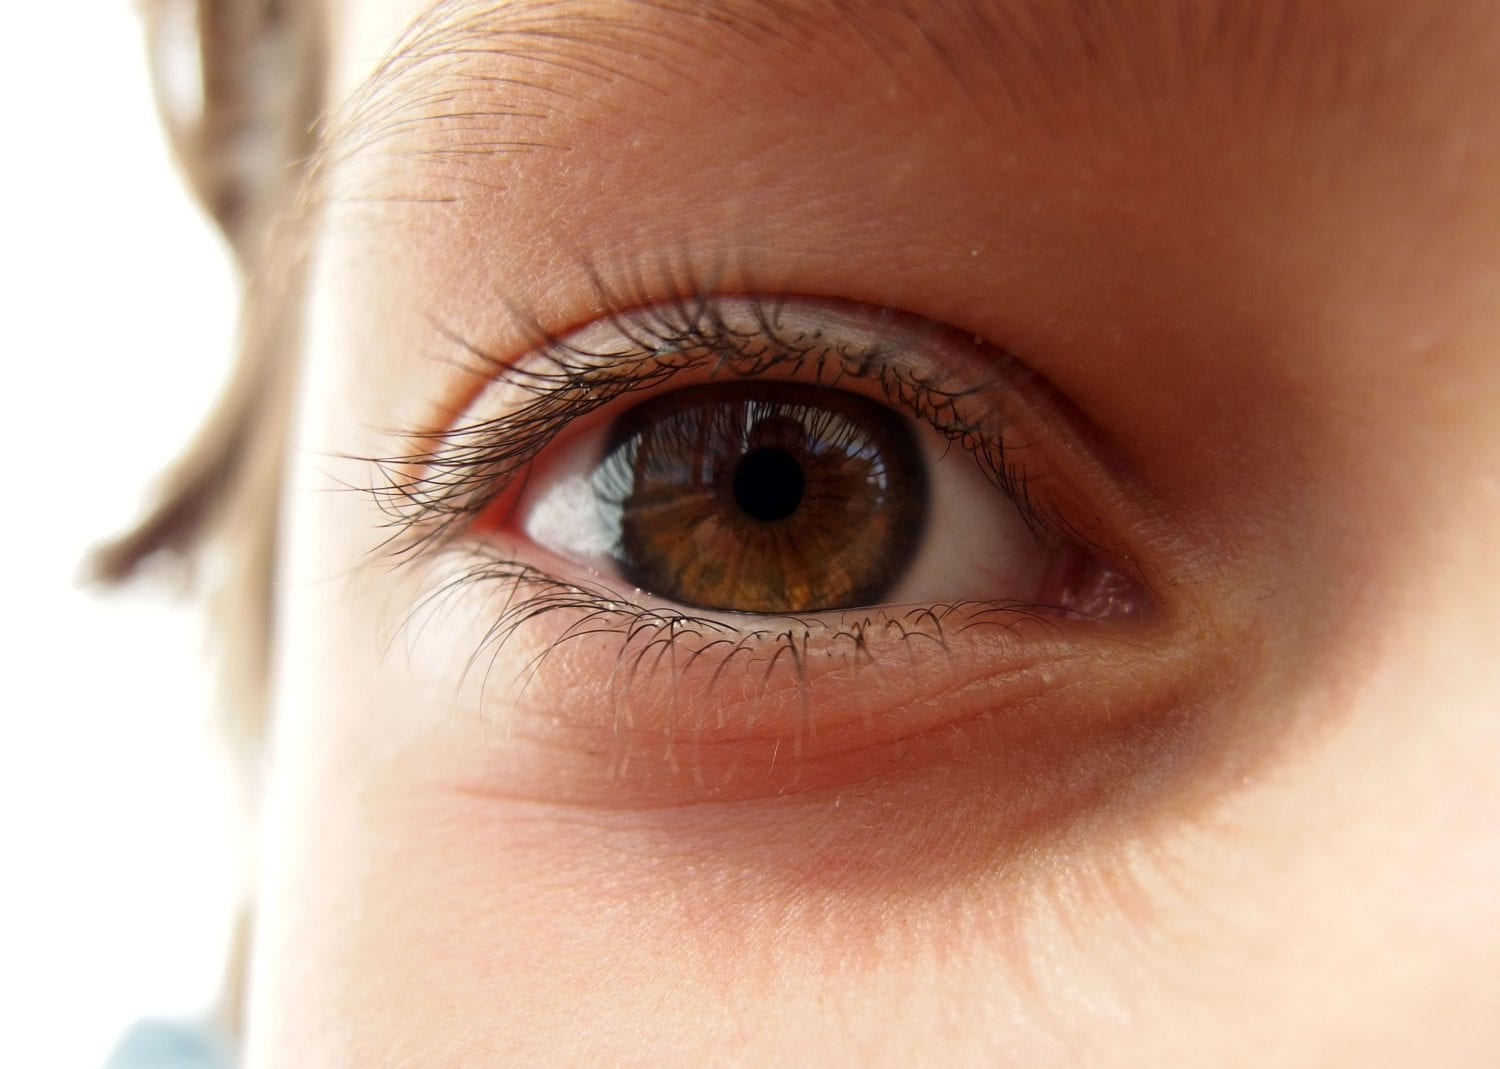 Children face a 15 month wait for eye-care in Galway